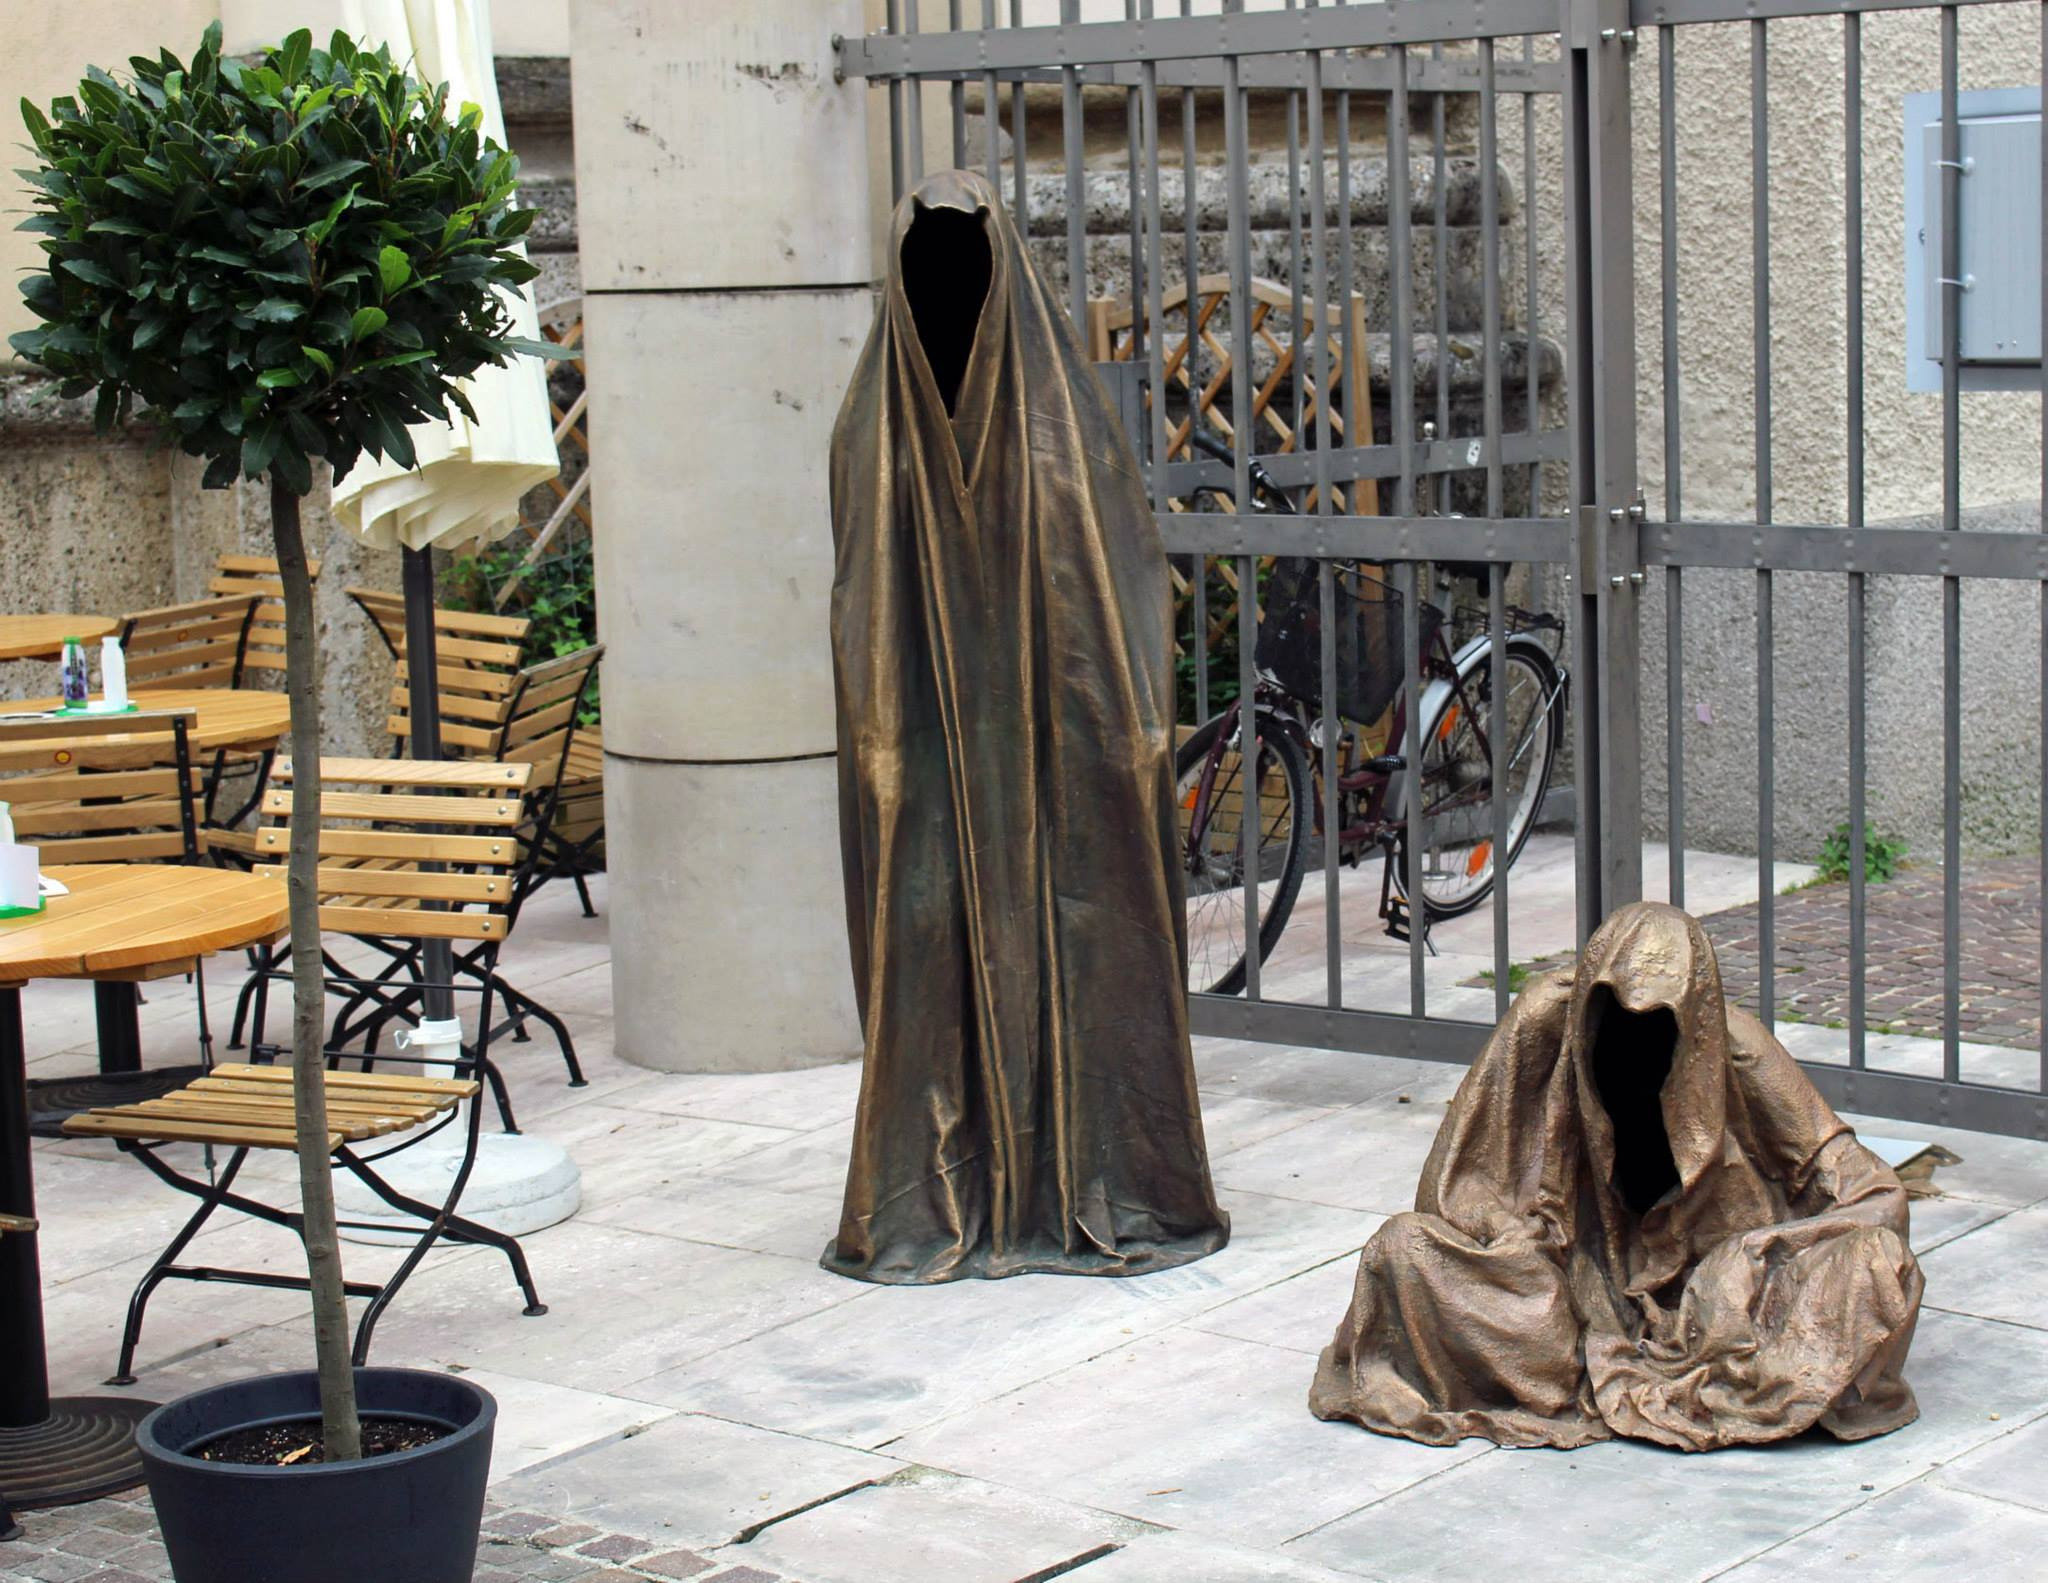 foto peter markl art salzburg international fine art fair art dealer kunsthandel freller guardians of time bronze arts statue sculpture guarden manfred kielnhofer